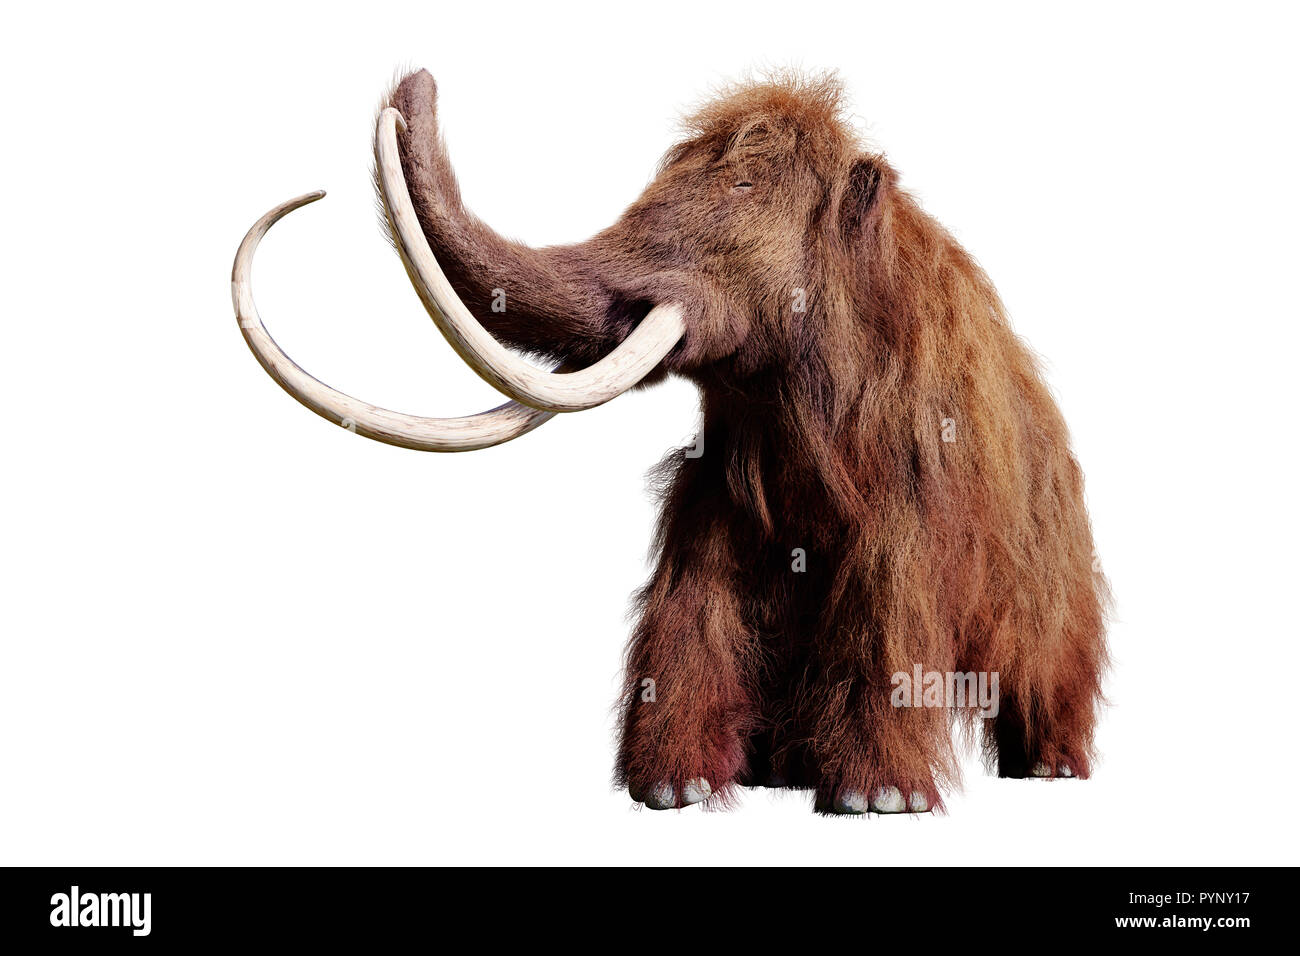 Ice Age Mammal Stock Photos & Ice Age Mammal Stock Images - Alamy